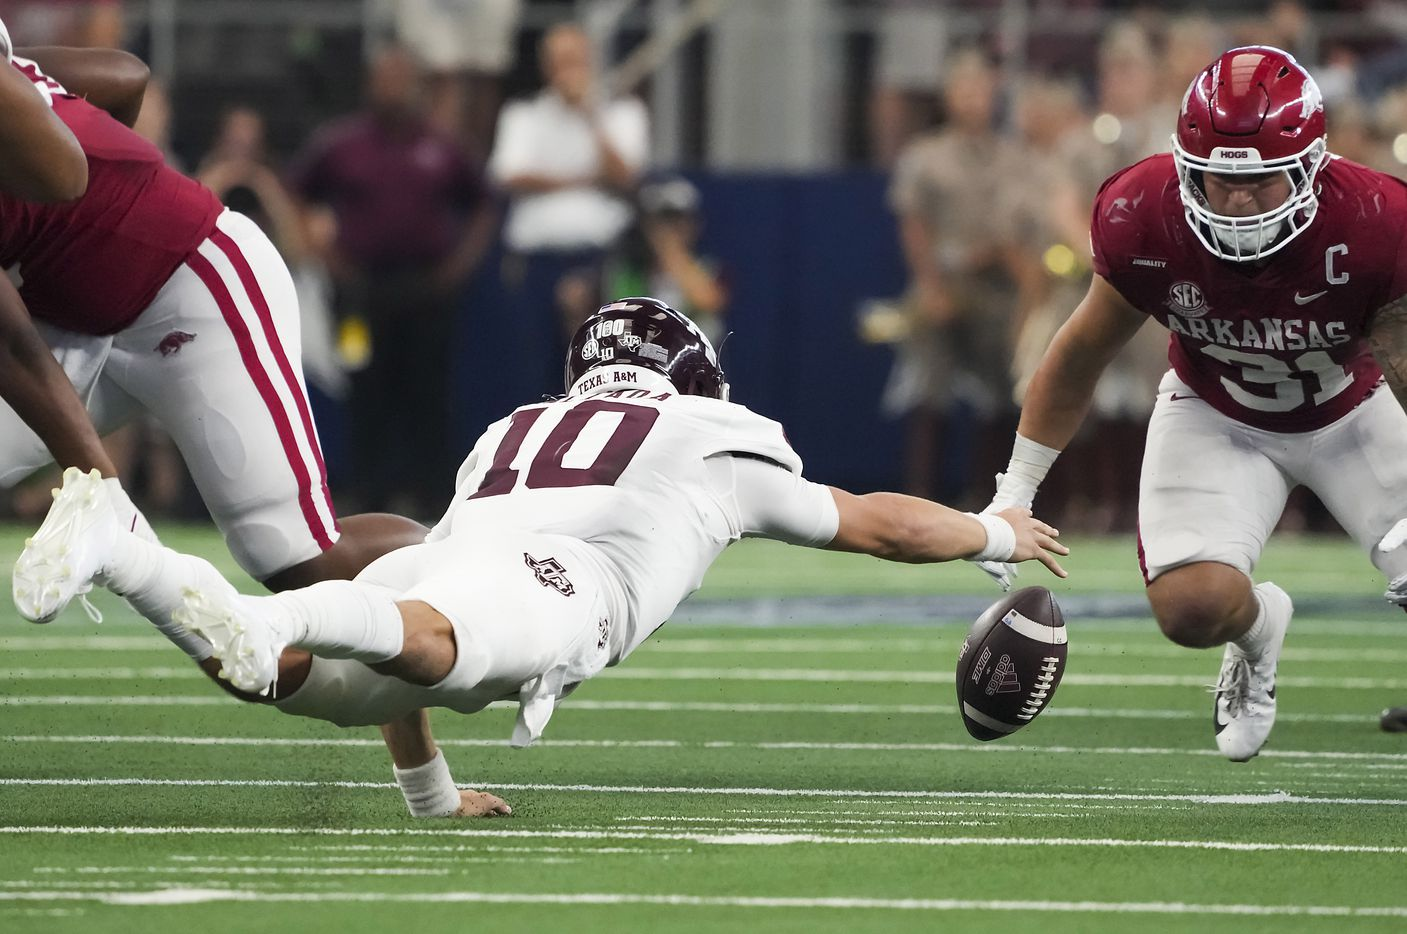 Texas A&M quarterback Zach Calzada (10) dives to recover his own fumble as Arkansas linebacker Grant Morgan (31) closes in during the first half of an NCAA football game at AT&T Stadium on Saturday, Sept. 25, 2021, in Arlington.